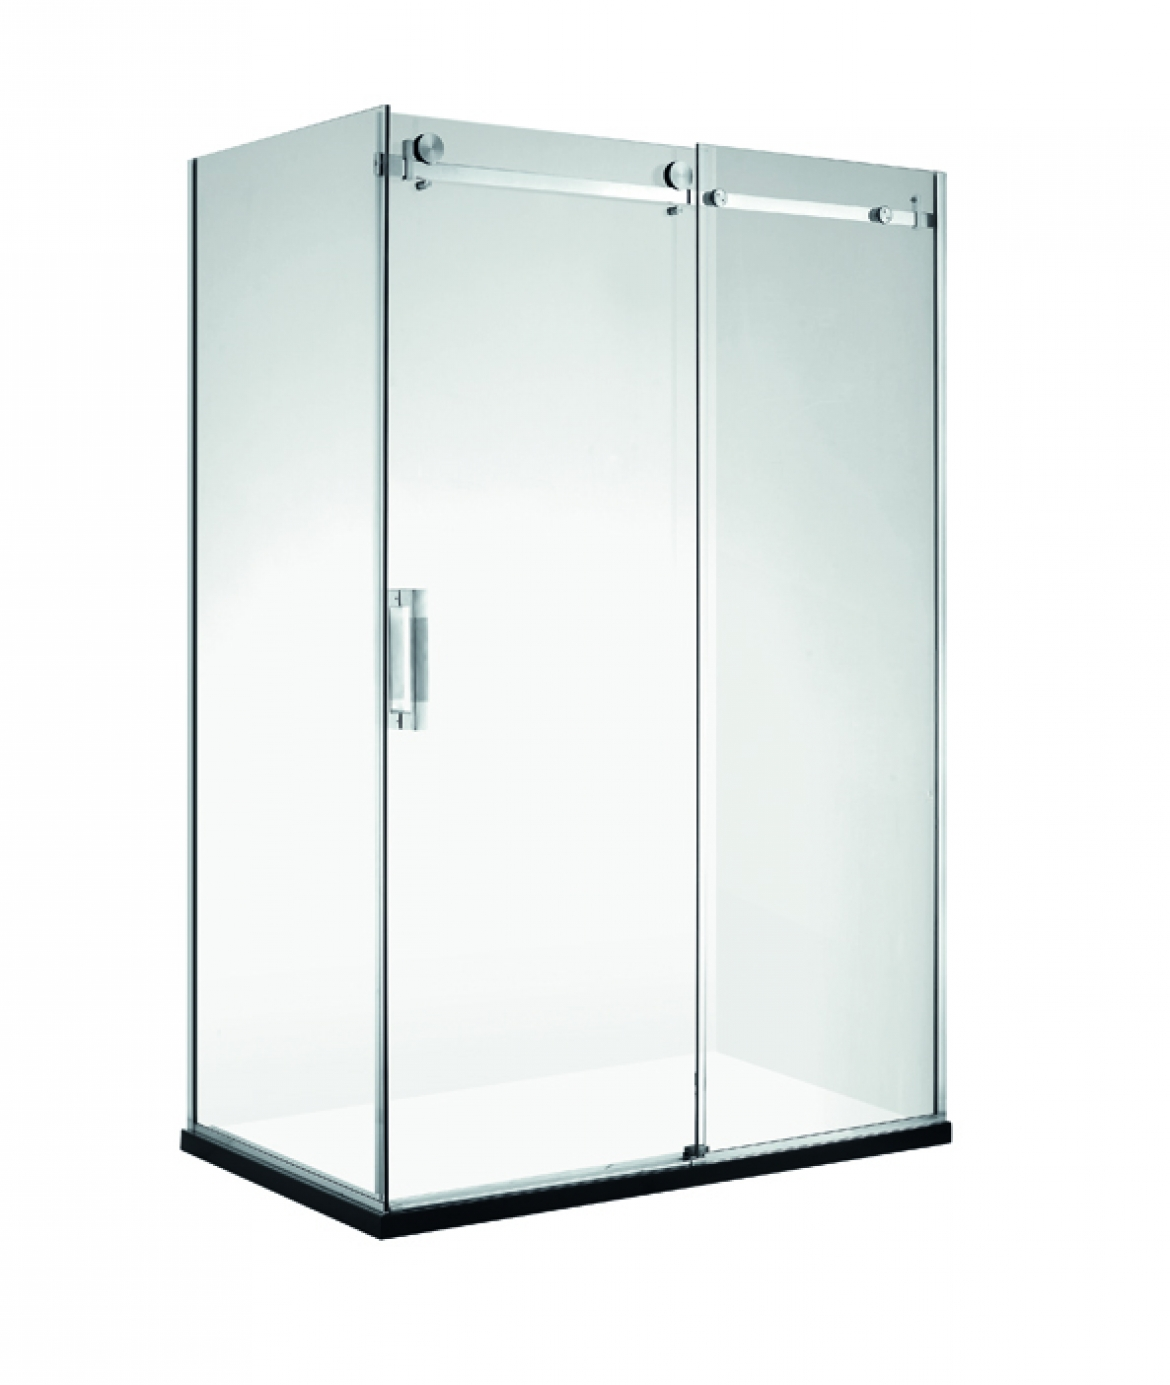 frameless shower screen [1150 x 850 sliding door]